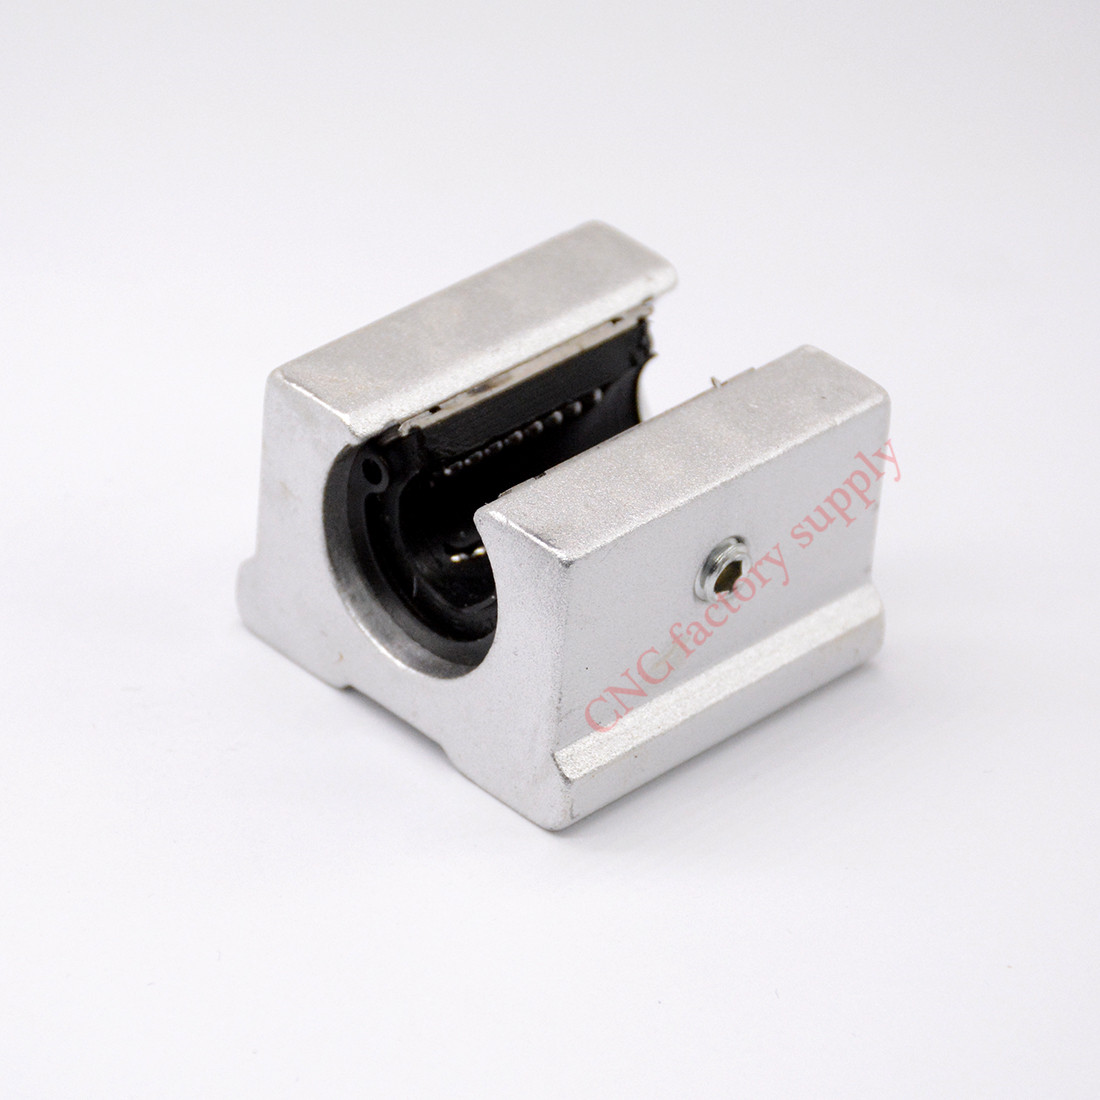 Free shipping SBR40UU 40mm Linear Ball Bearing Block CNC Router SBR40 sbr40uu 40mm cnc router linear ball bearing block